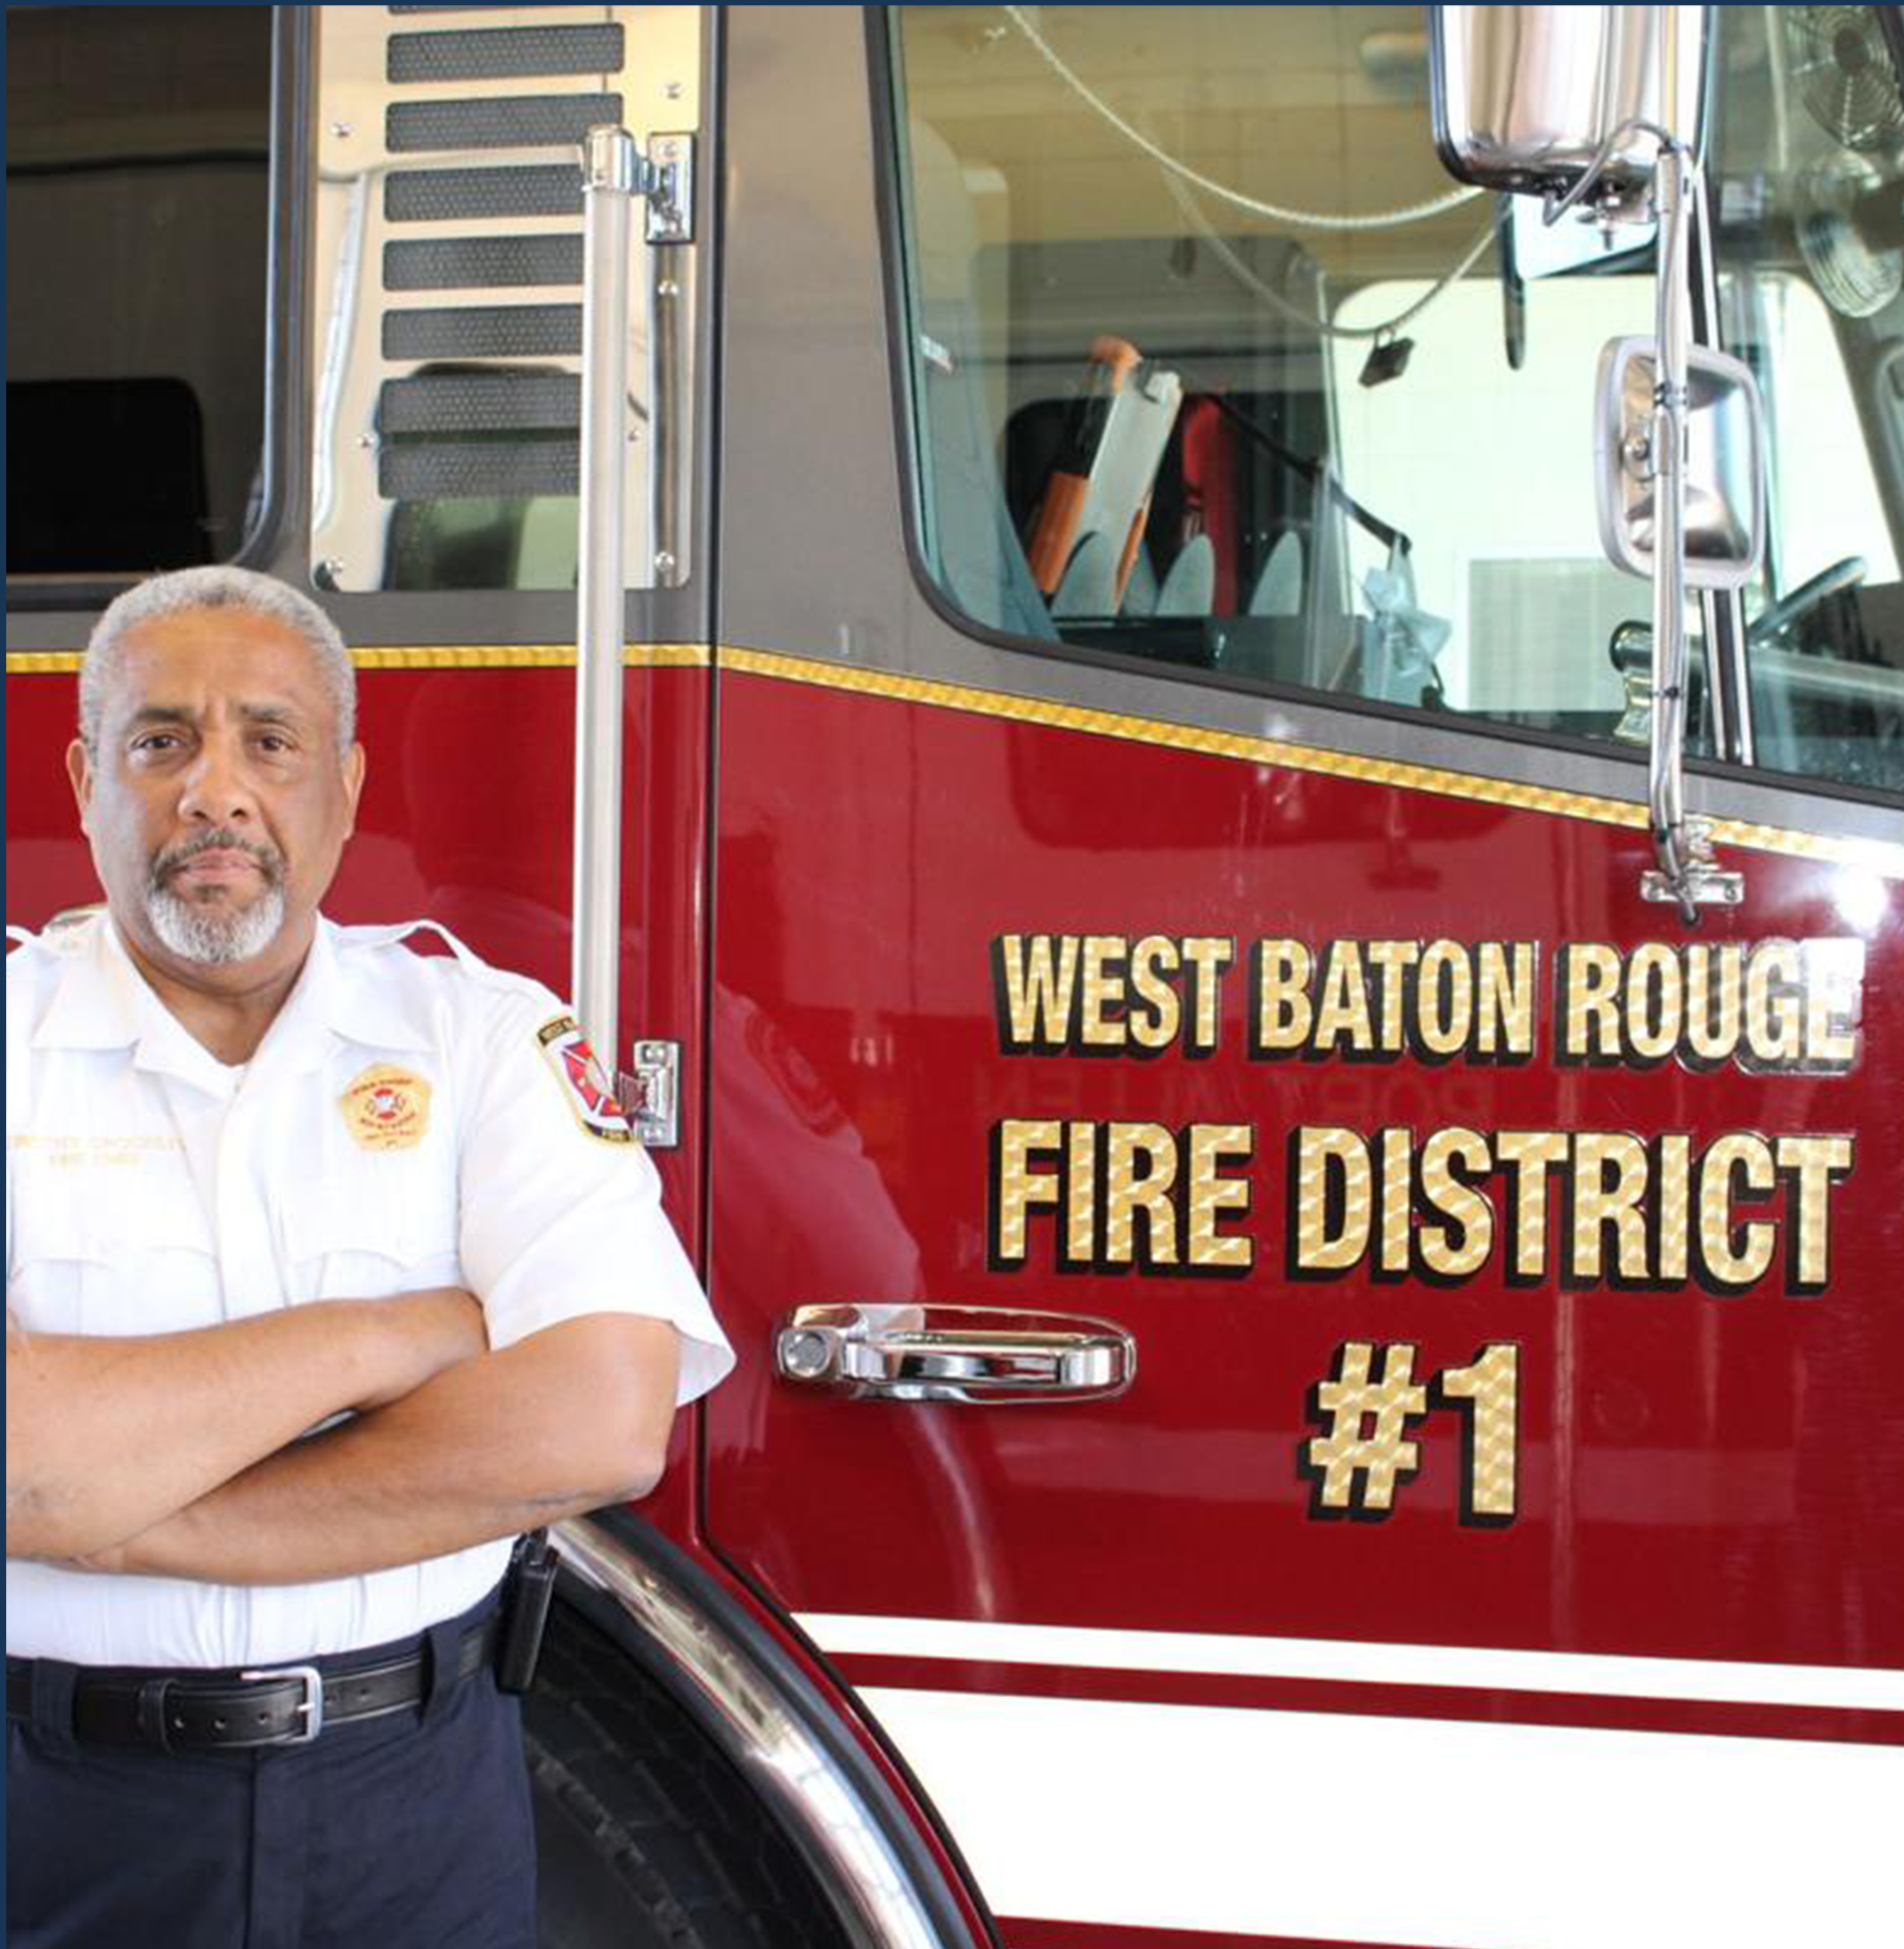 Parish Fire District welcomes 'new era' under Chief Crockett